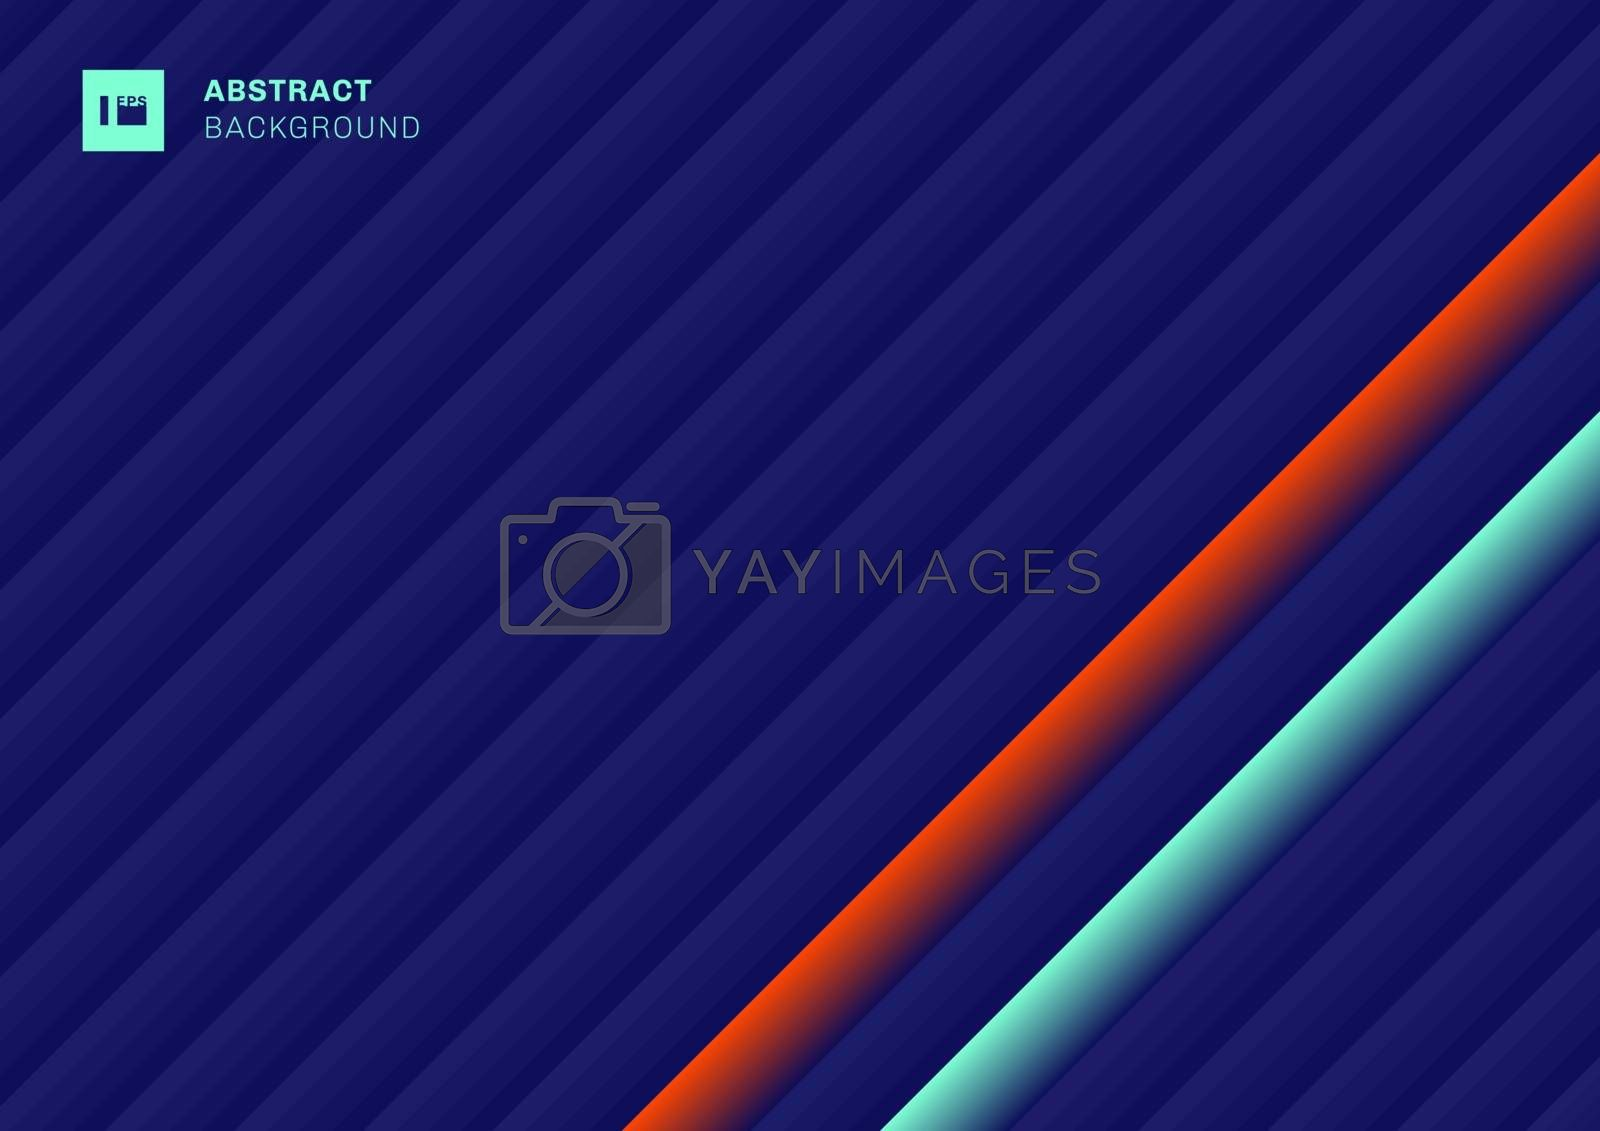 Abstract pattern stripes geometric diagonal lines blue, green, red vibrant color background with space for your text. Vector illustration